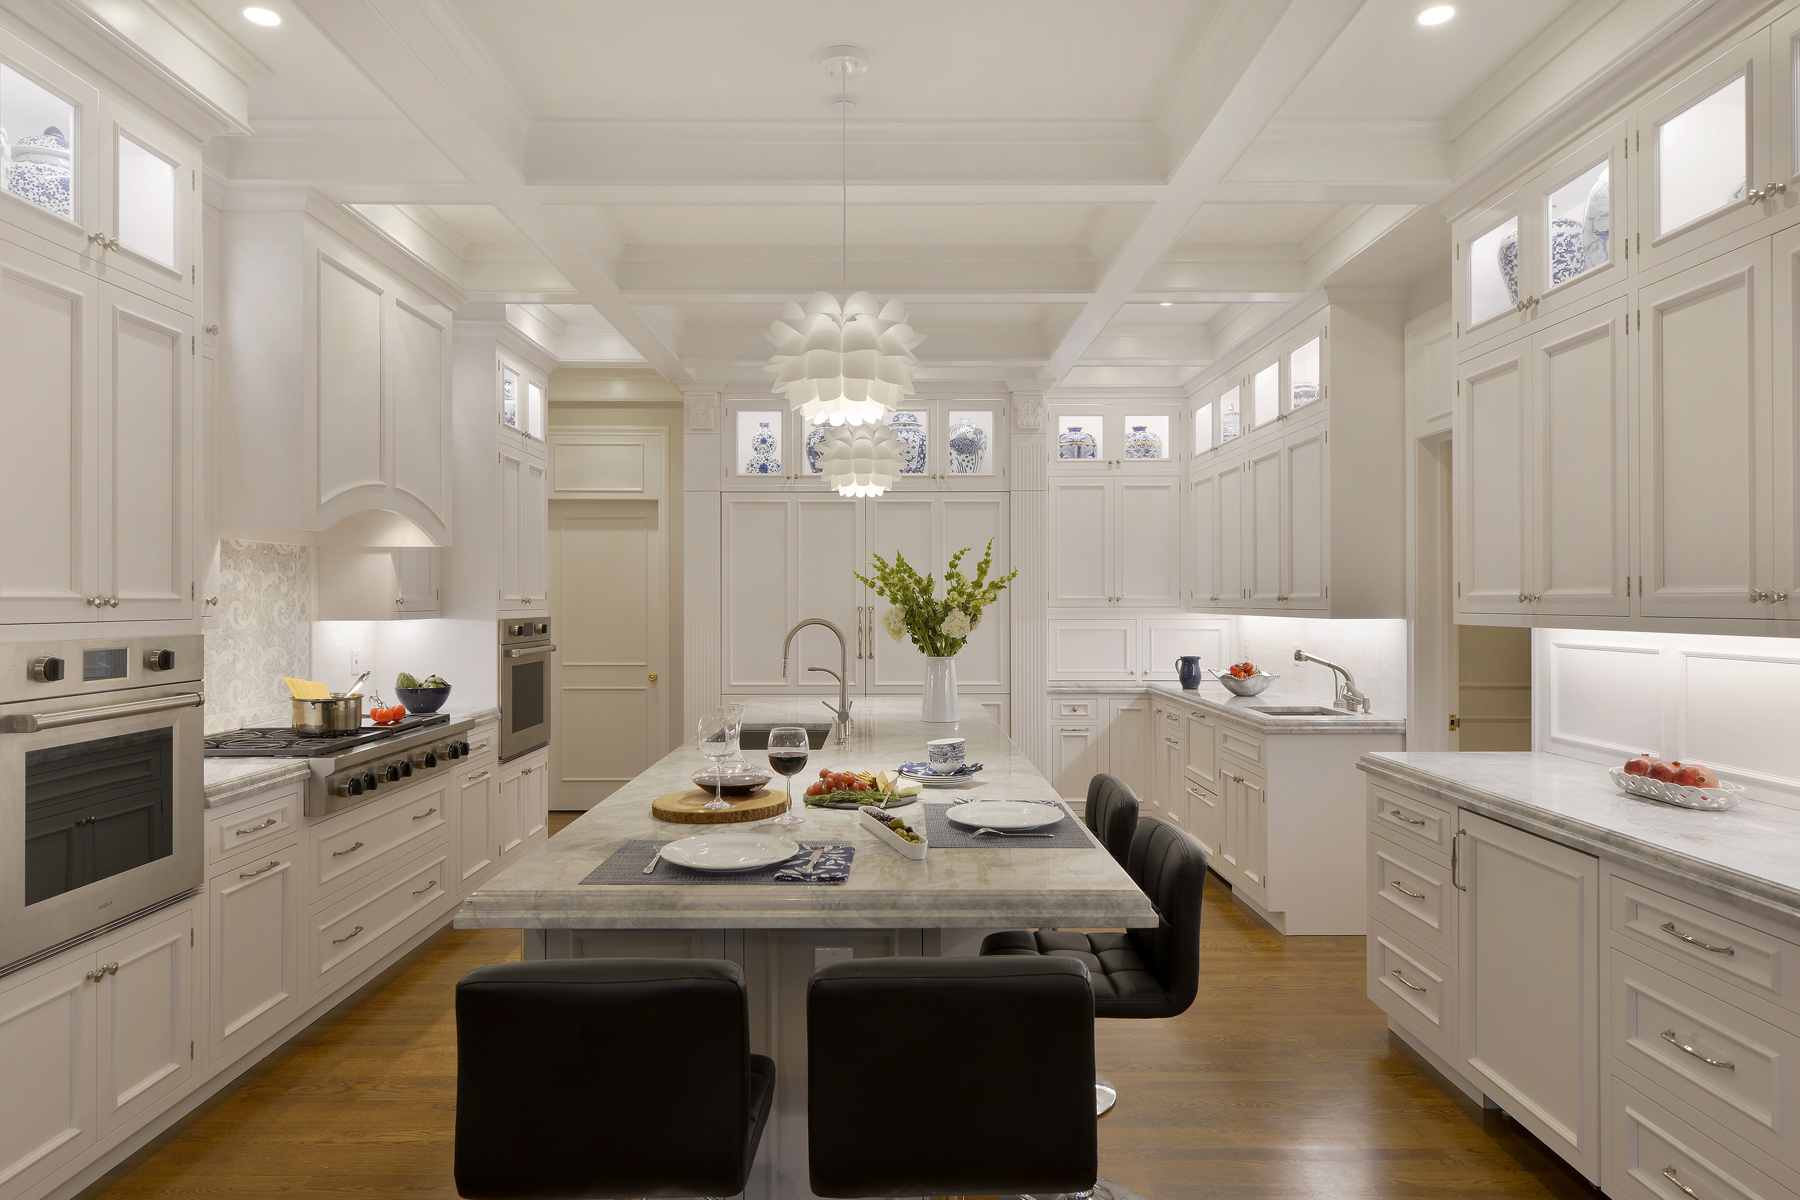 Expansive kitchen features coffered ceiling, natural oak flooring, double-tiered, white painted cabinets by Bilotta, large hearth, and a large island with seating. Top cabinets are lit and have glass fronts for display. Designed by Fabrice Garson of Bilotta Kitchens.